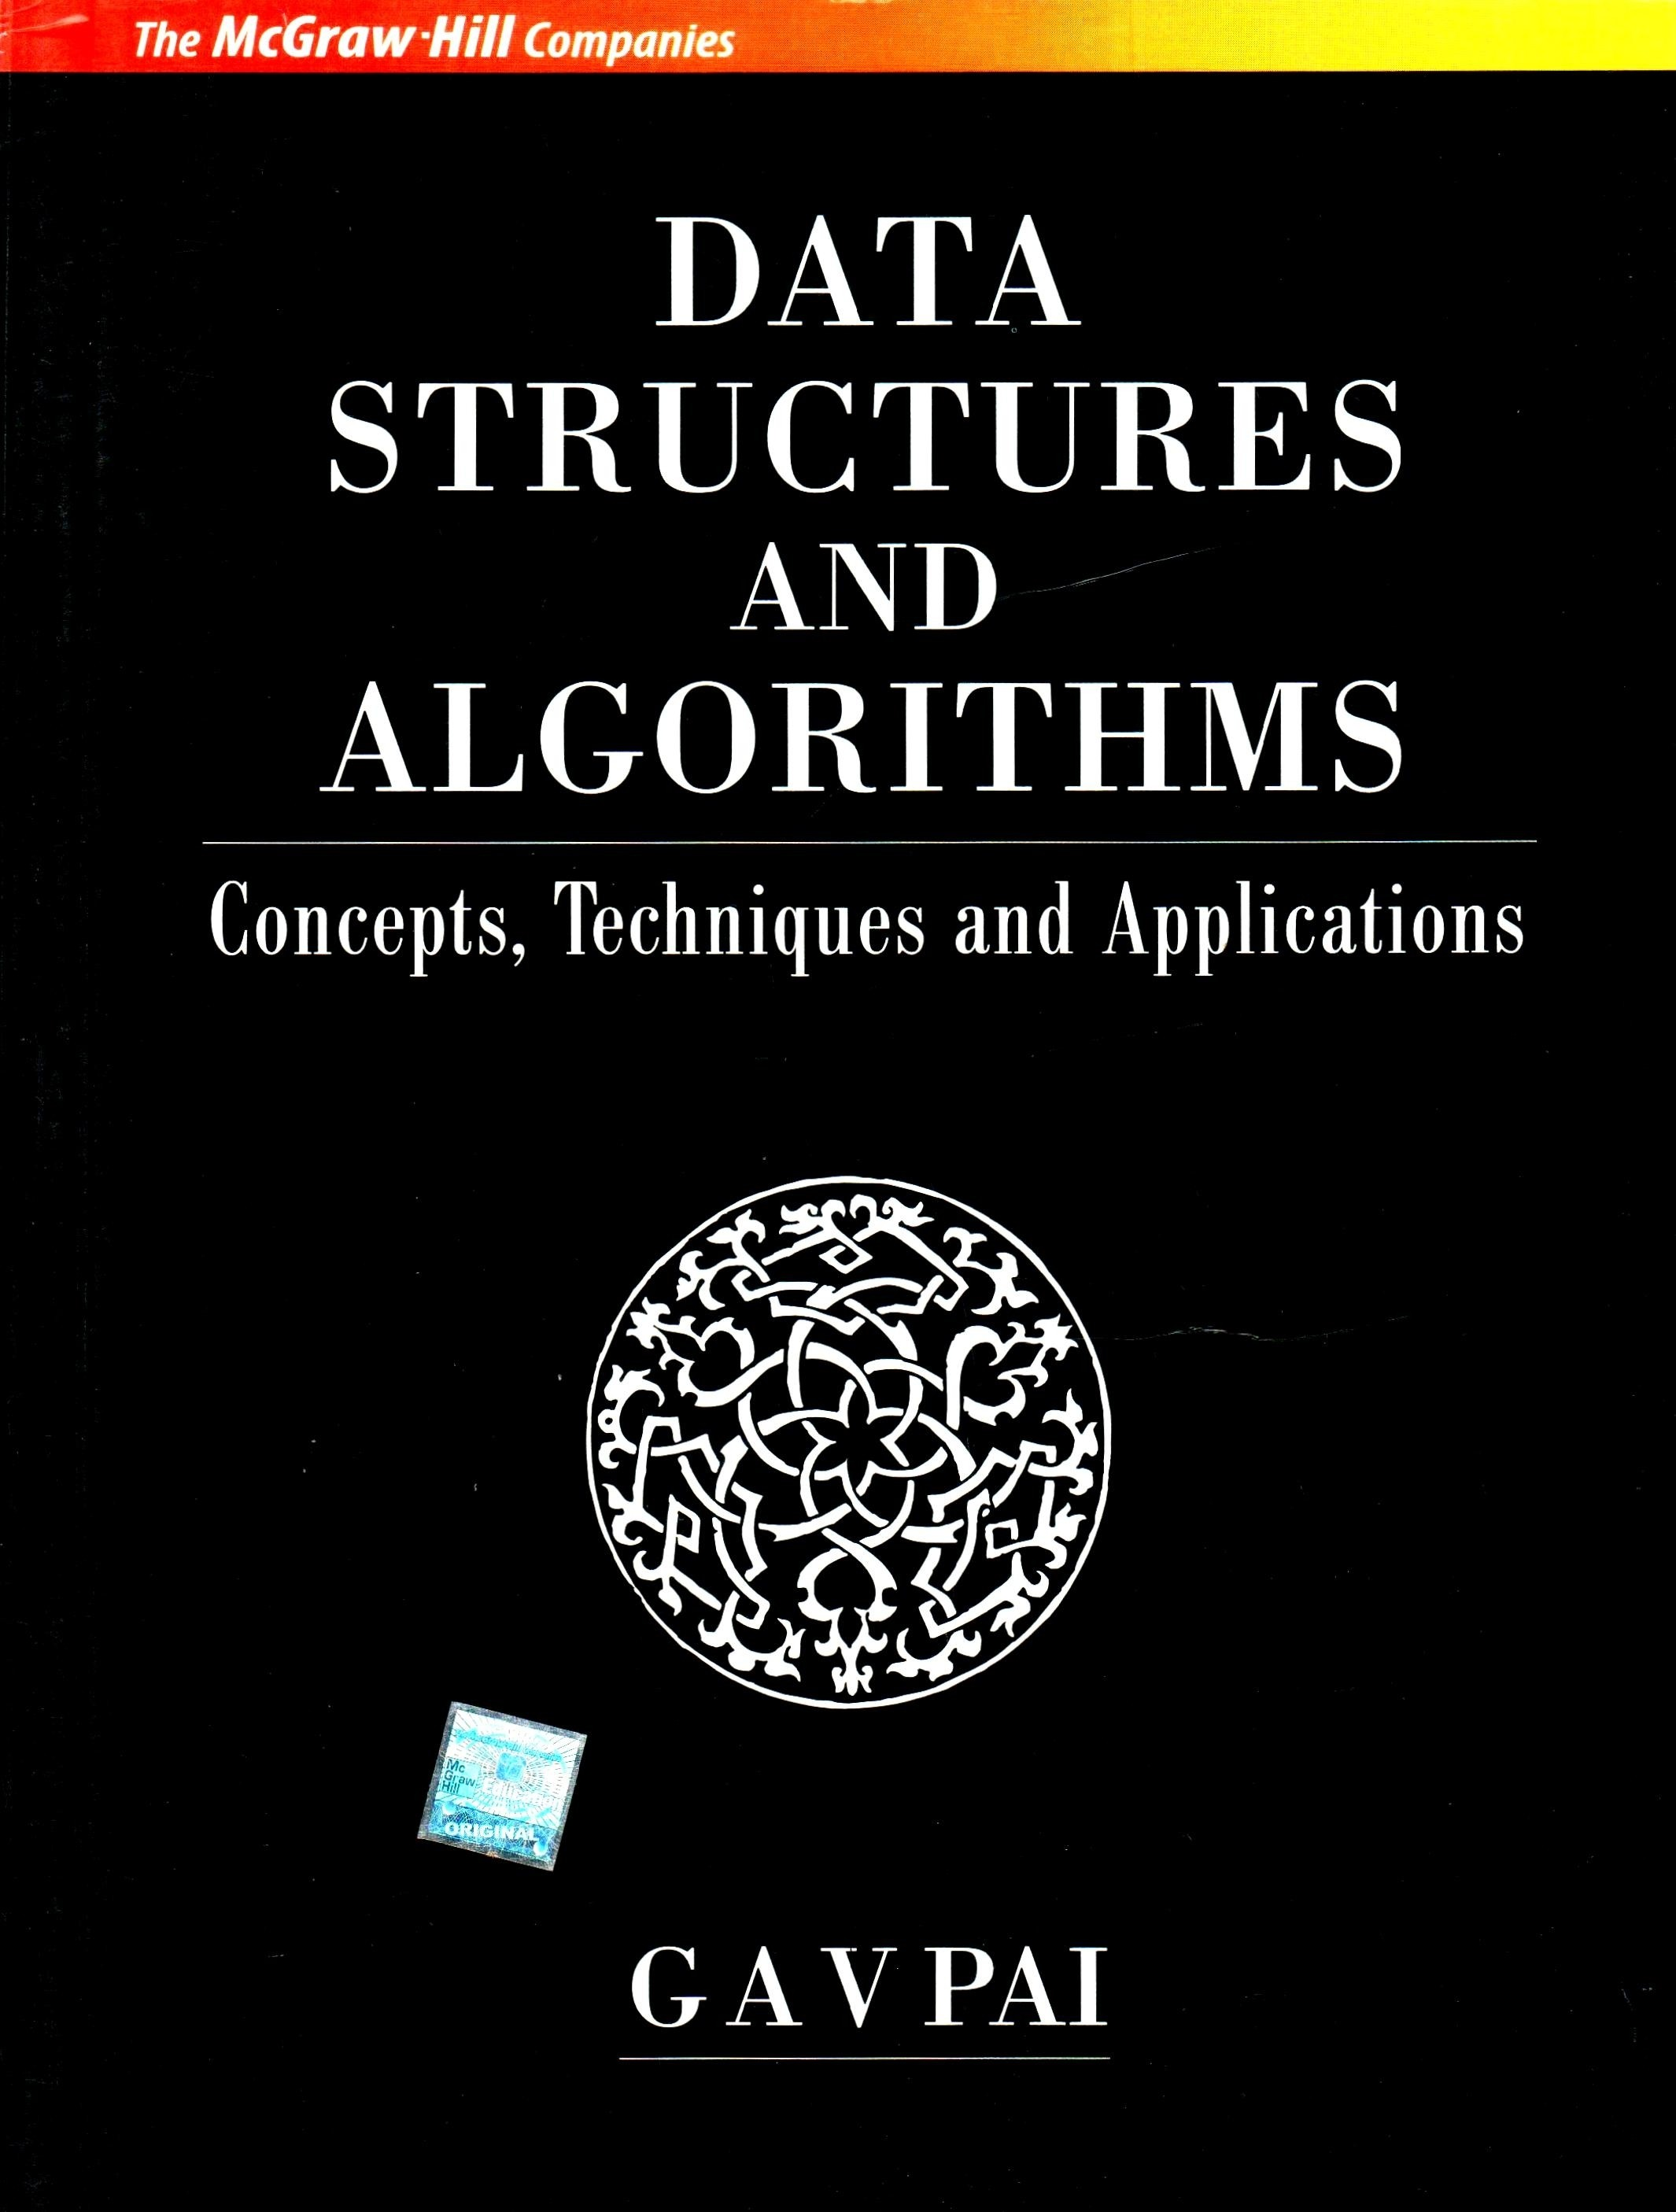 data structures in c++ pdf